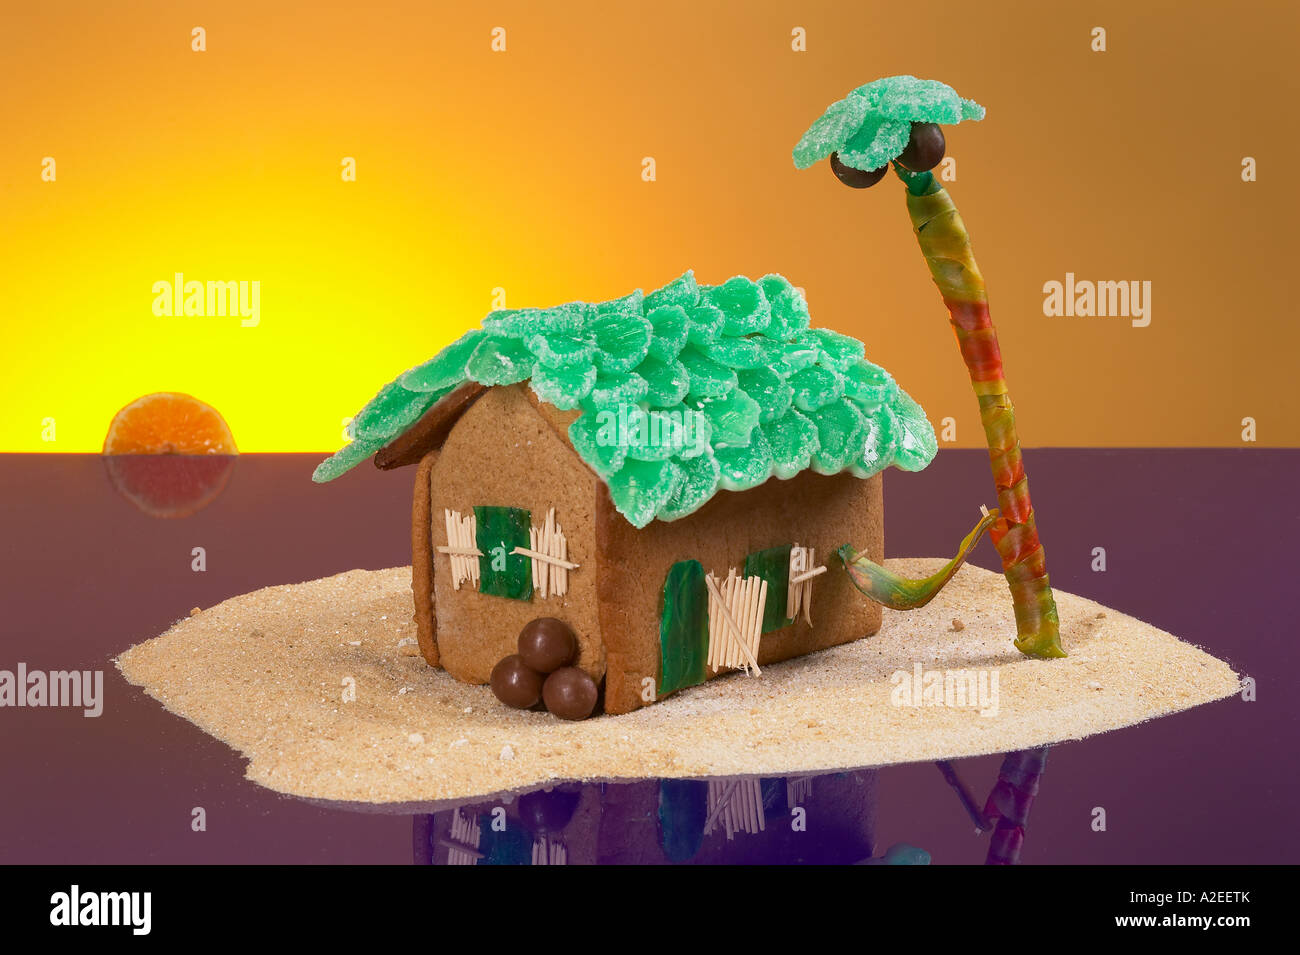 Tropical gingerbread house island theme stock photo for Tropical themed house